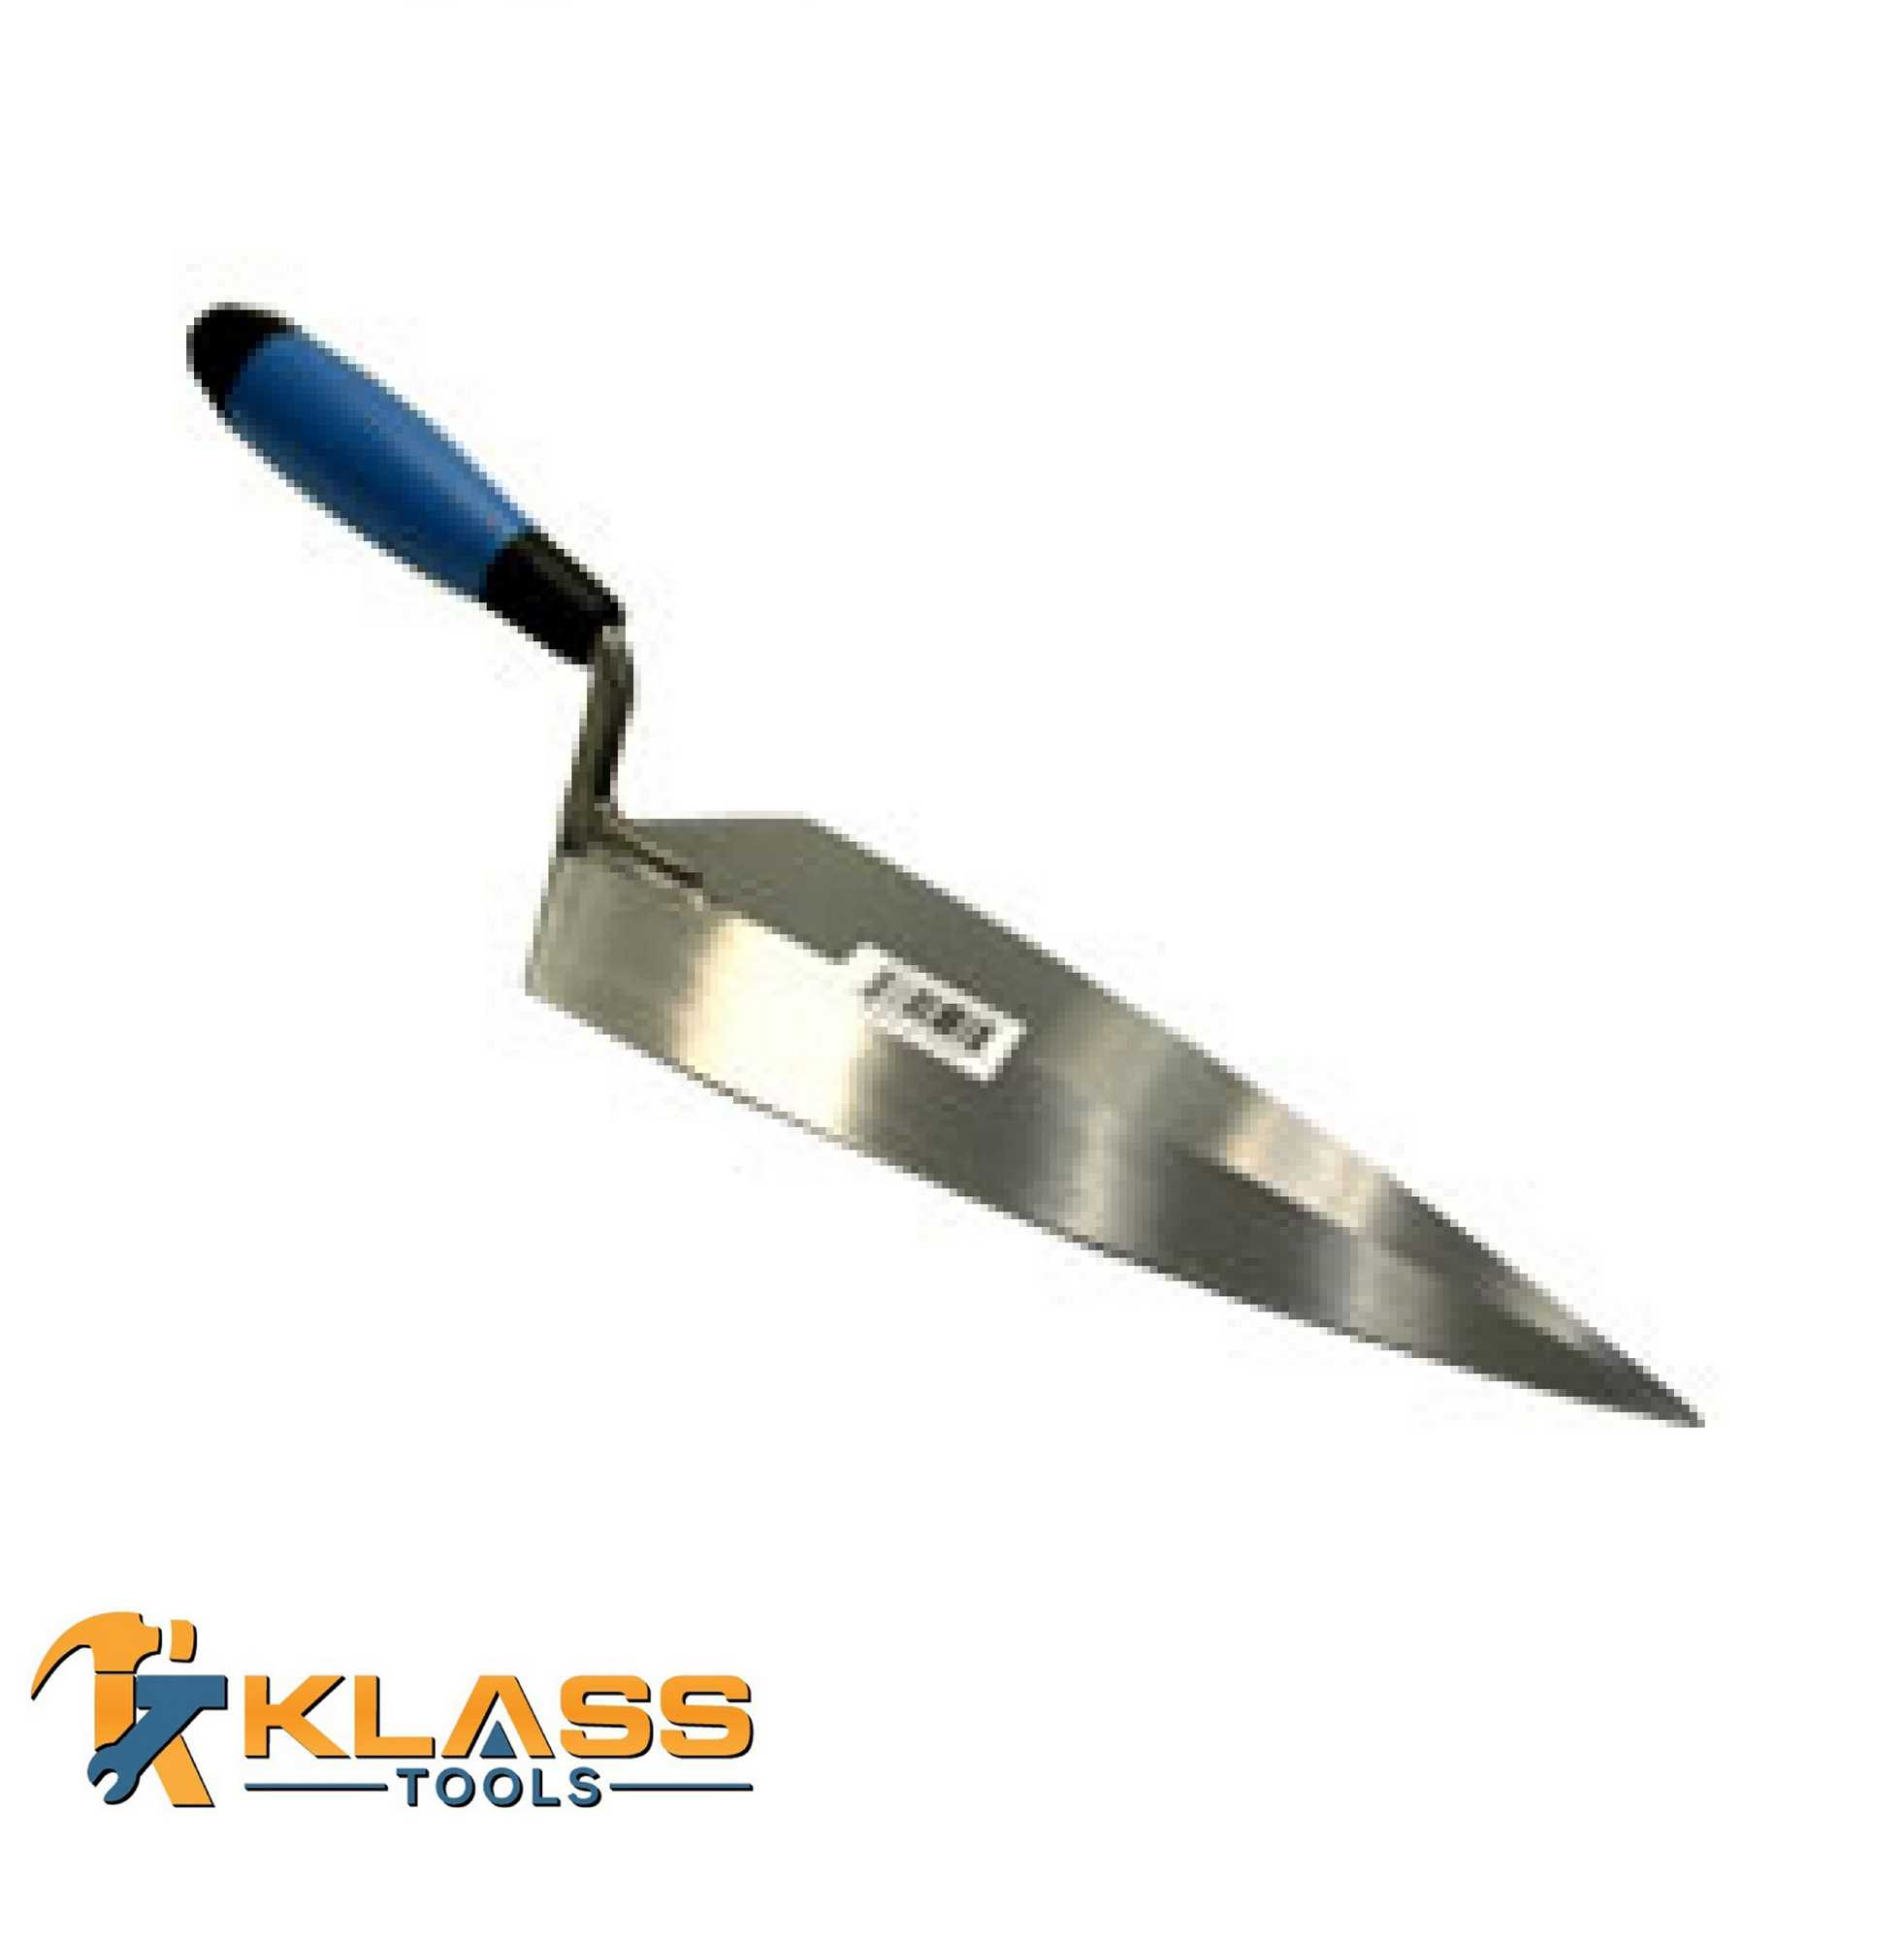 6'X12' Point Trowel TPR HDL